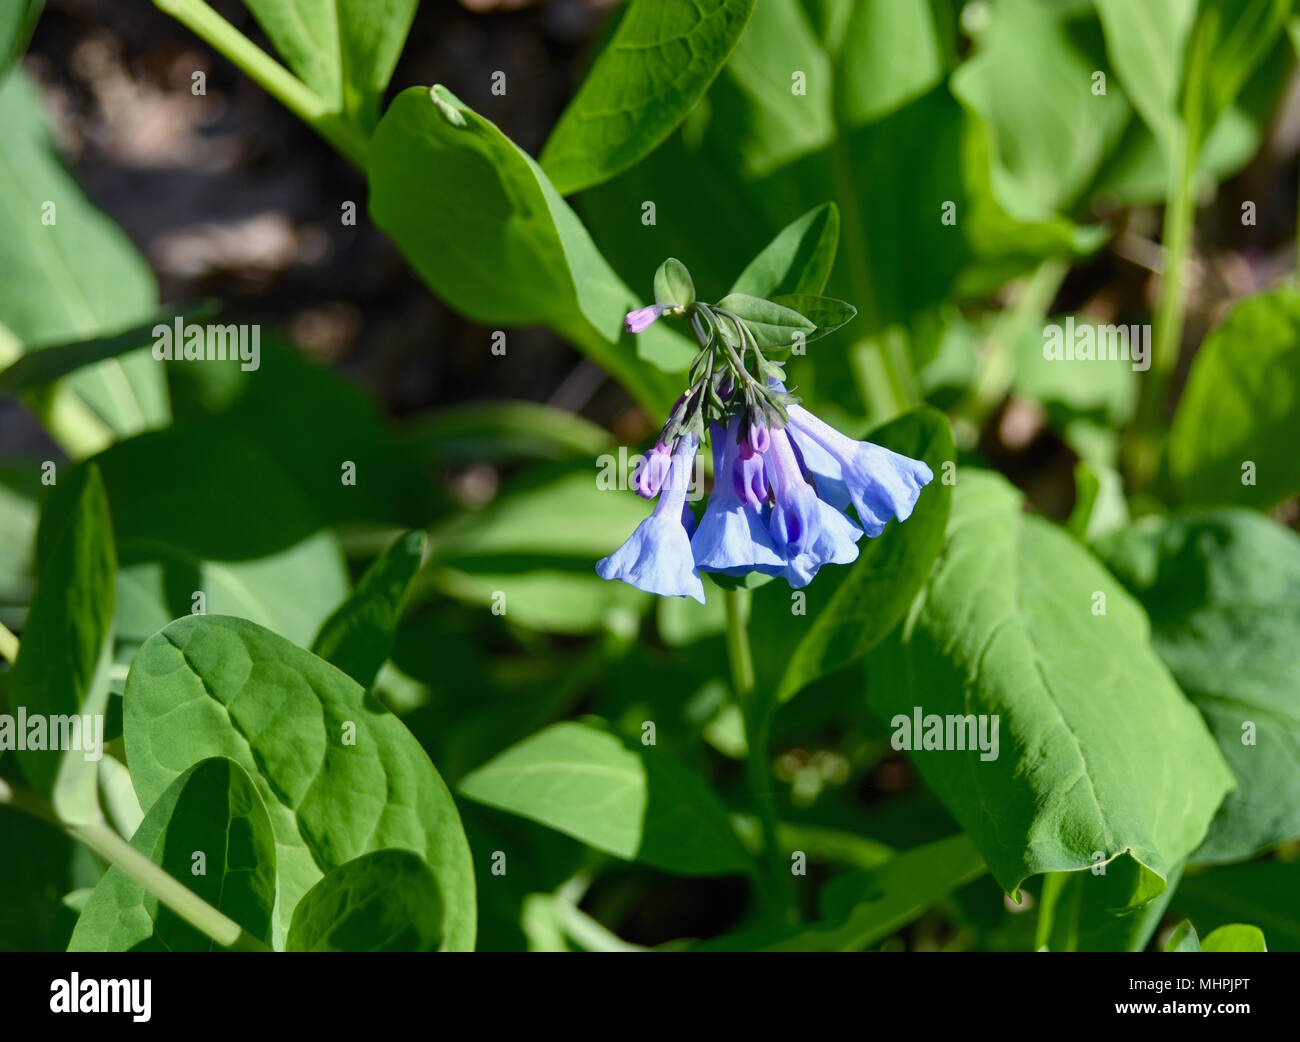 Virginia Bluebell Flowers And Green Leaves Growing In A Spring